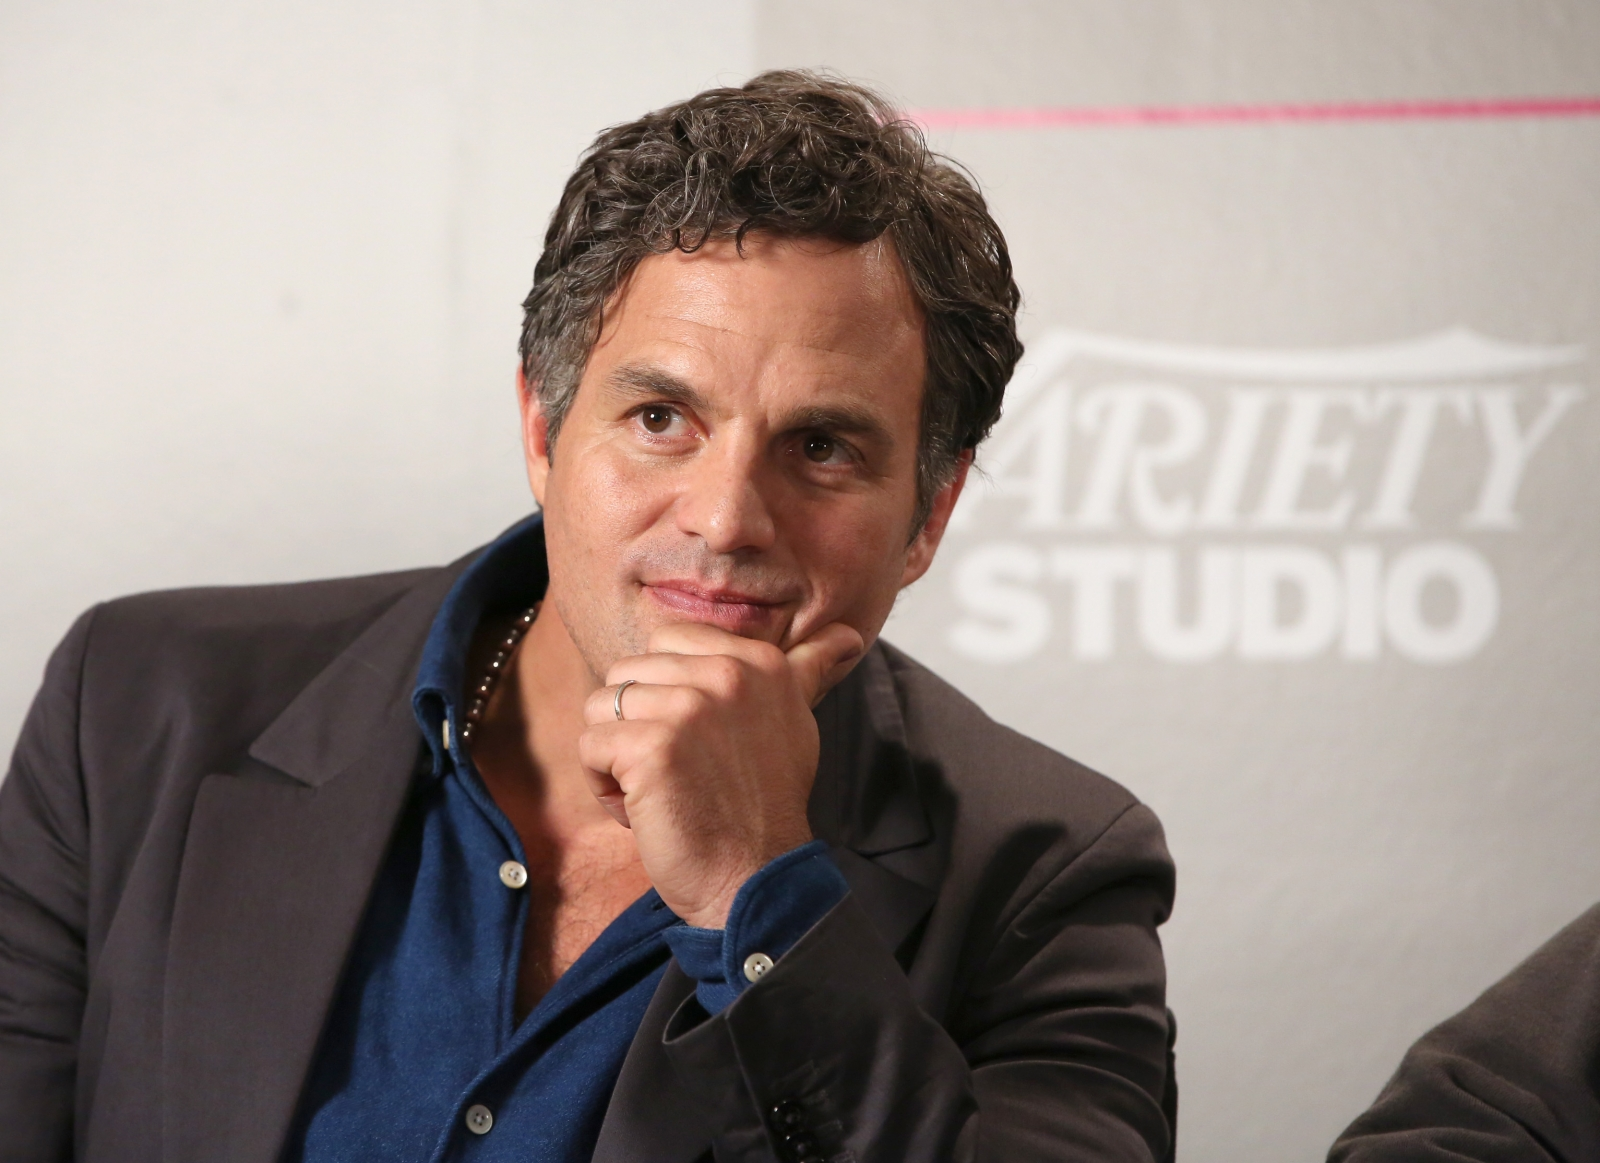 Actor Mark Ruffalo